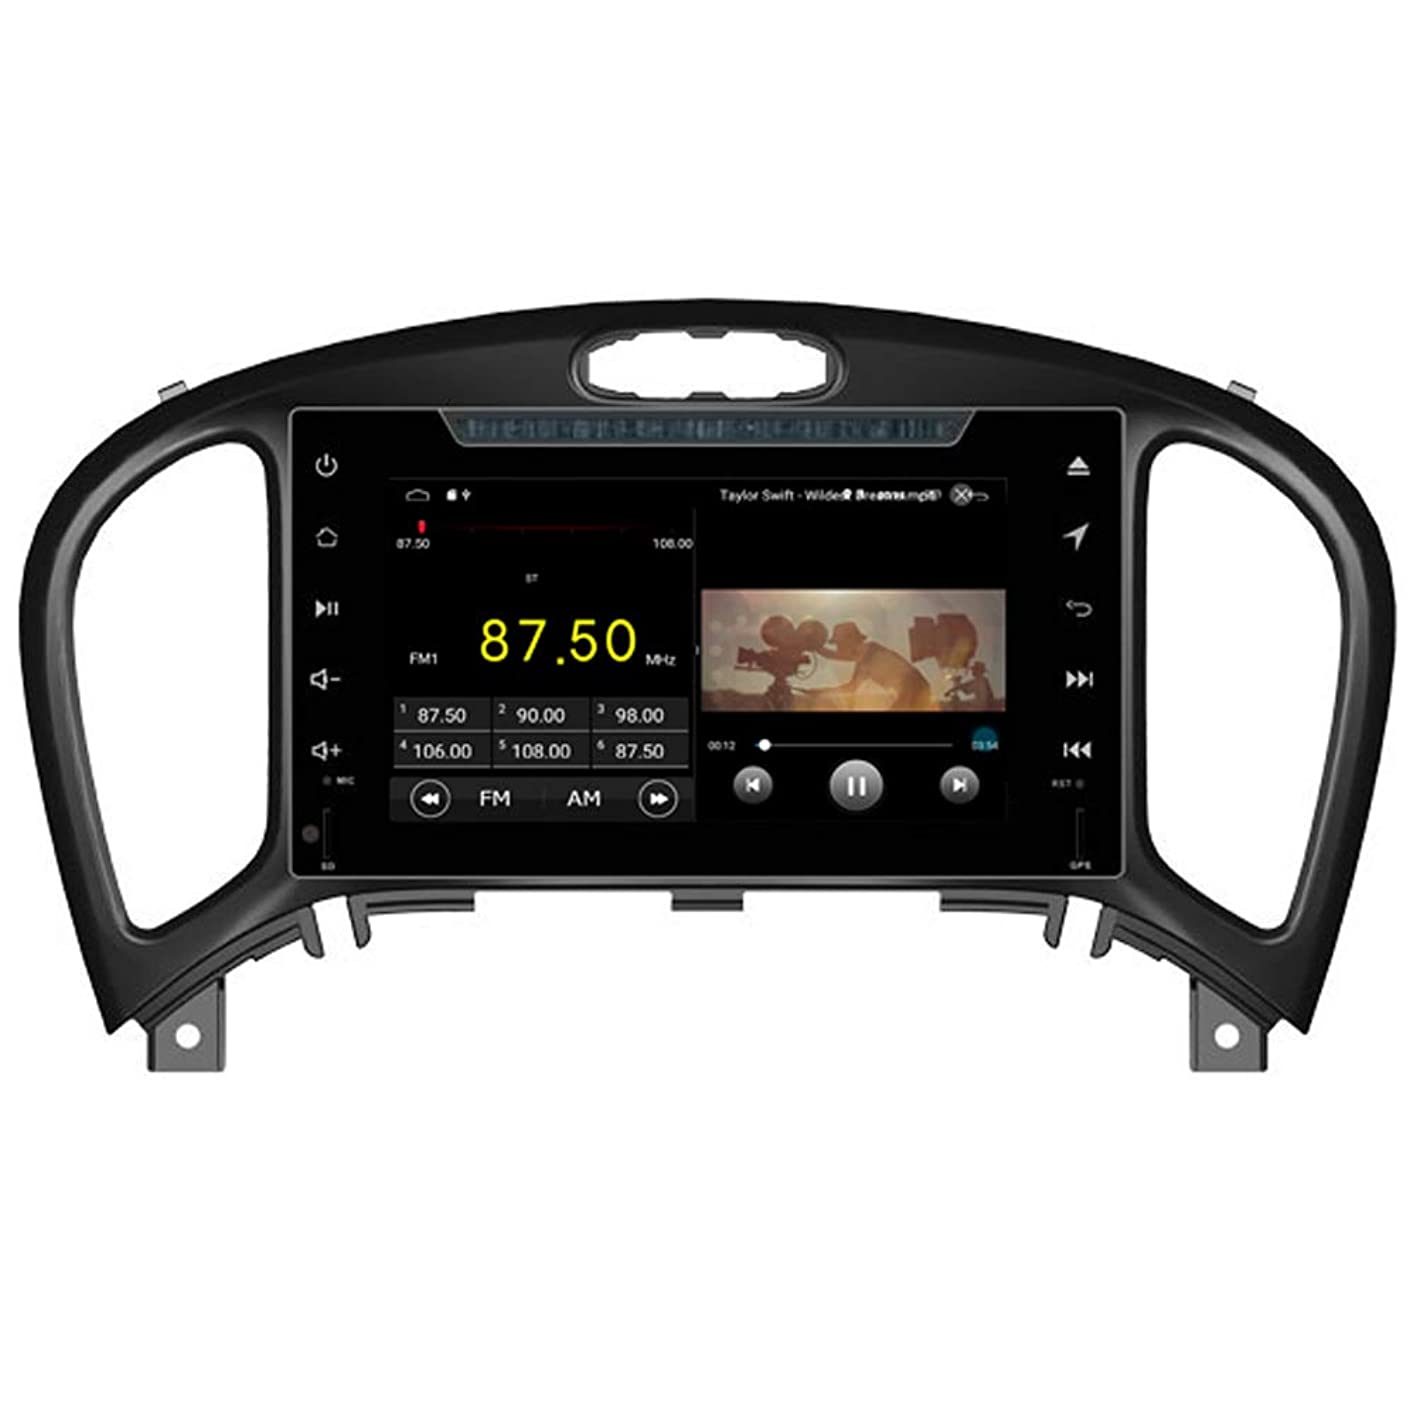 Autosion in Dash Android 8.1 Car DVD Player Radio Head Unit GPS Navi Stereo for Nissan Juke 2012 2013 2014 2015 2016 2017 Steering Wheel Control etwebazevgk367